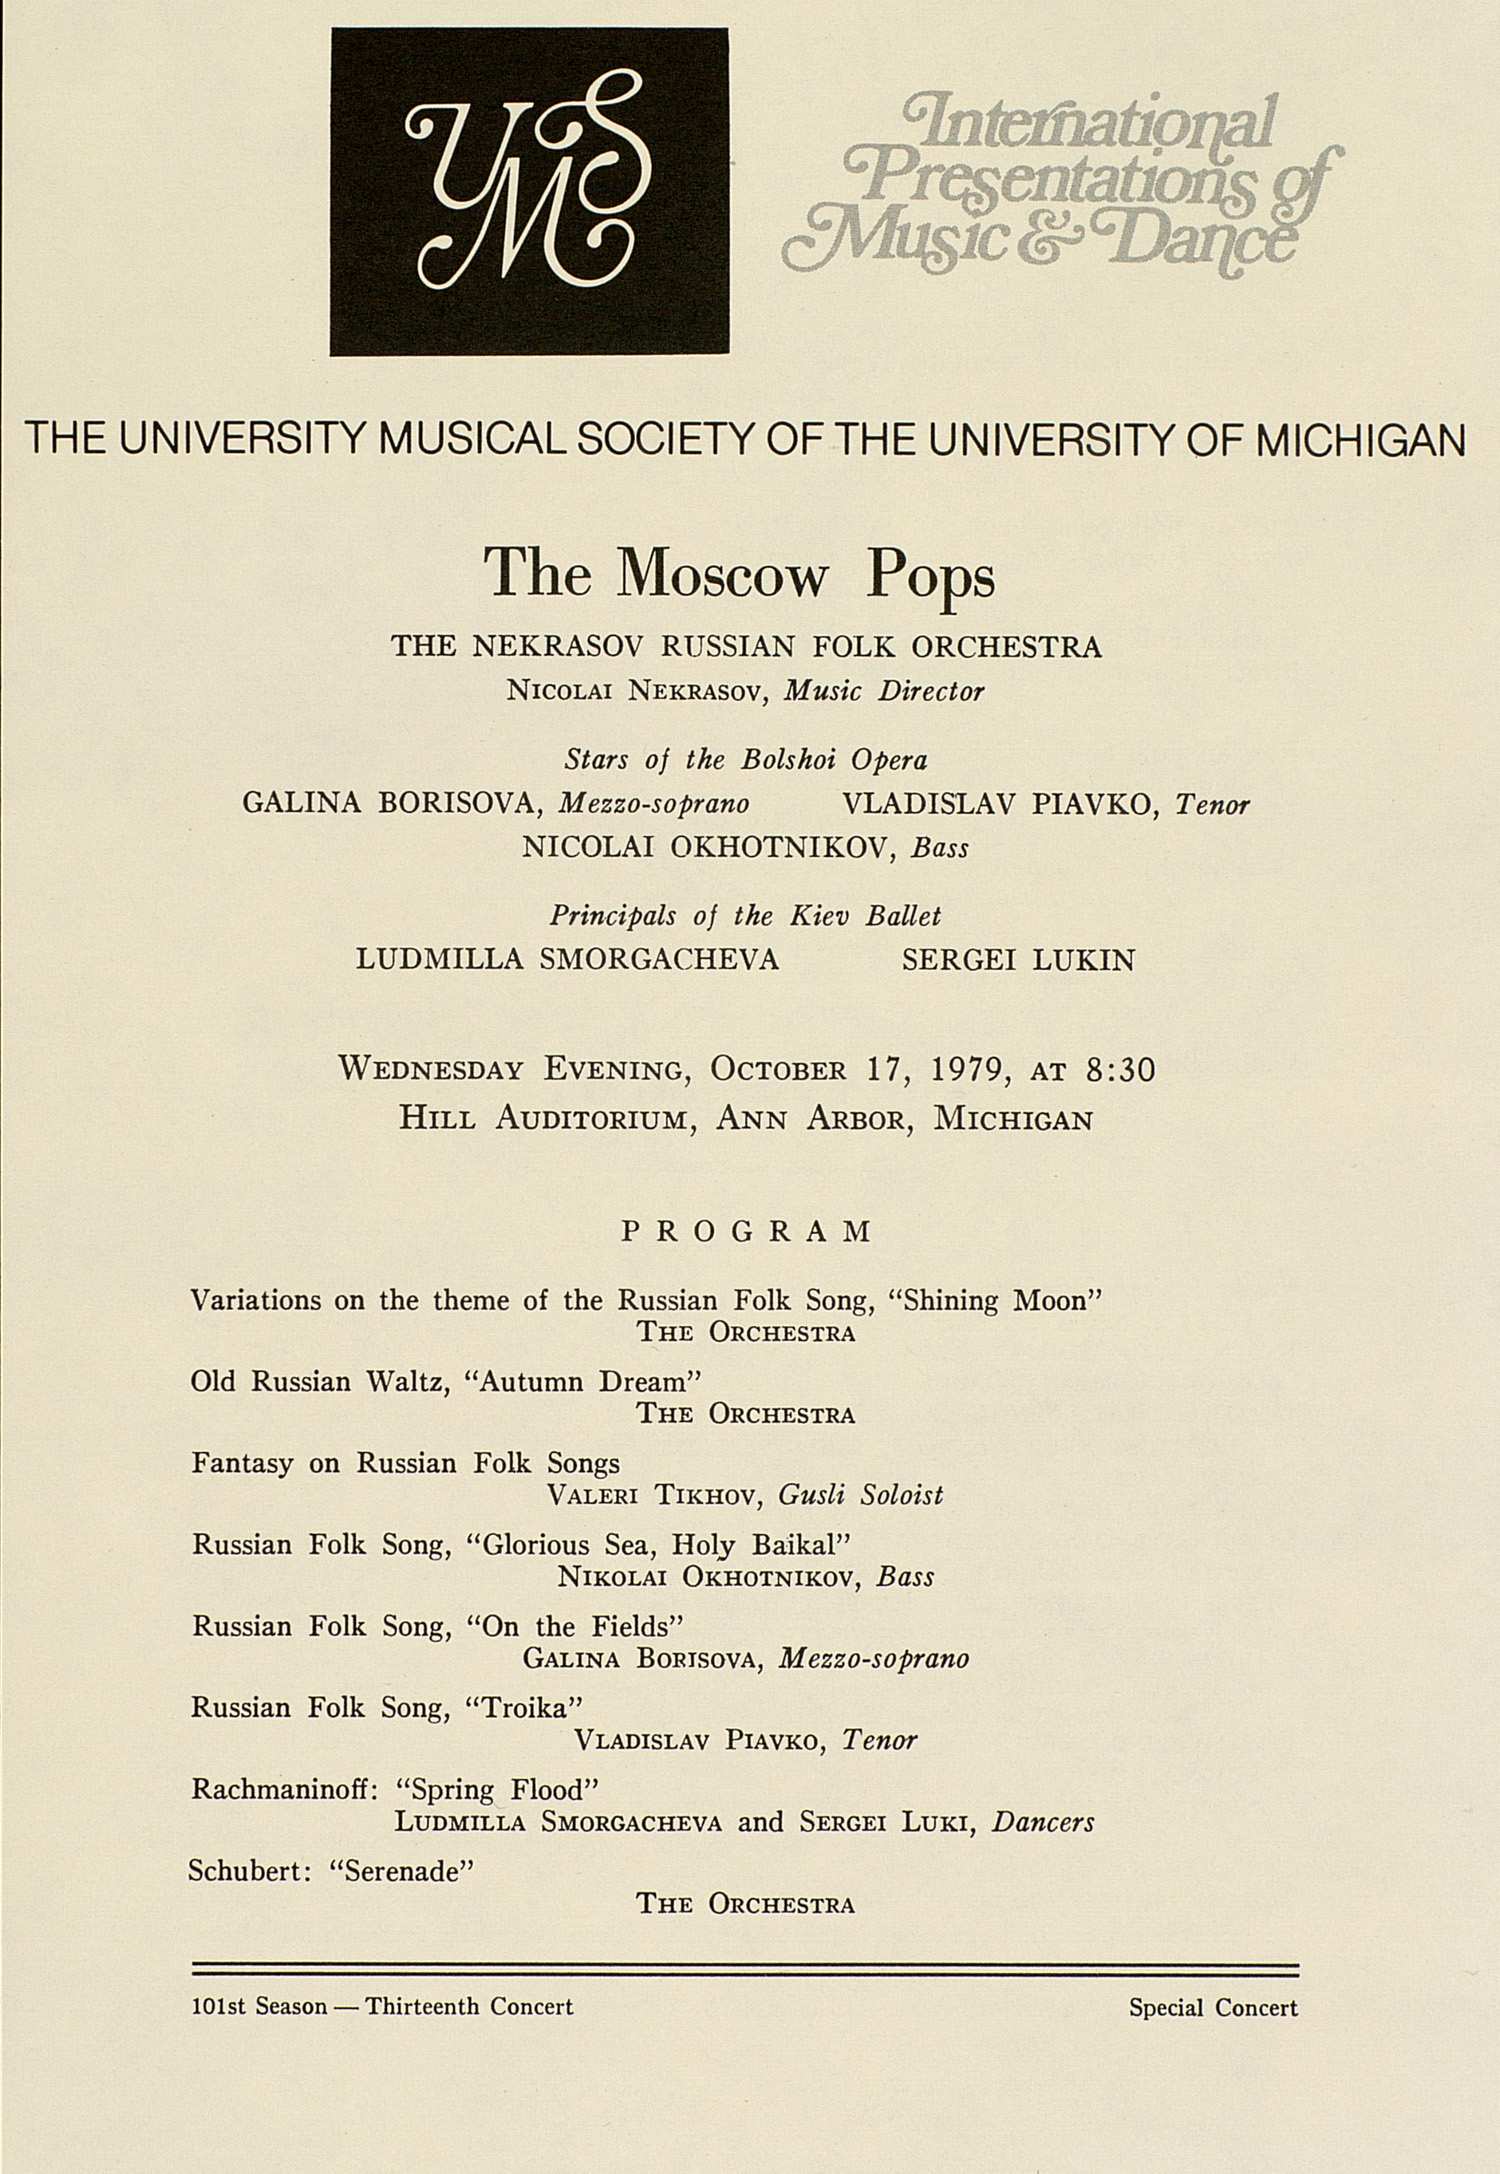 UMS Concert Program, October 17, 1979: The Moscow Pops -- The Nekrasov Russian Folk Orchestra image